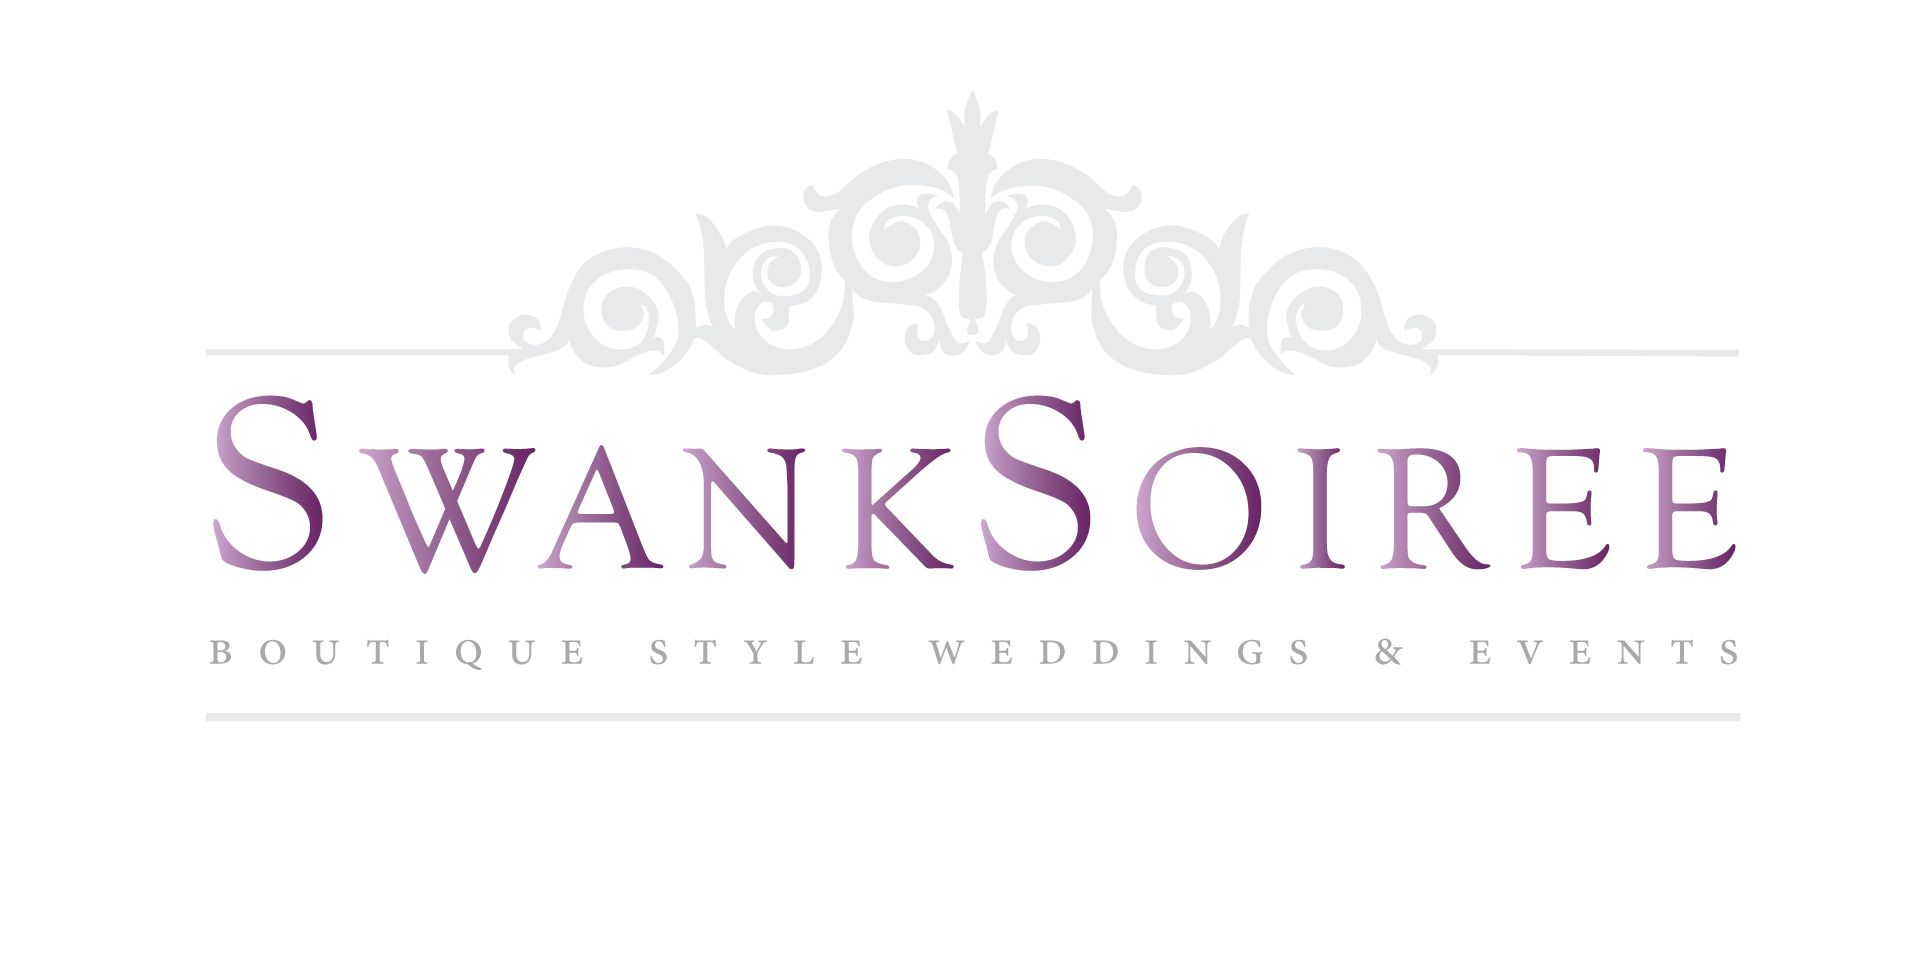 Event Planner S Soiree New Logo And Website